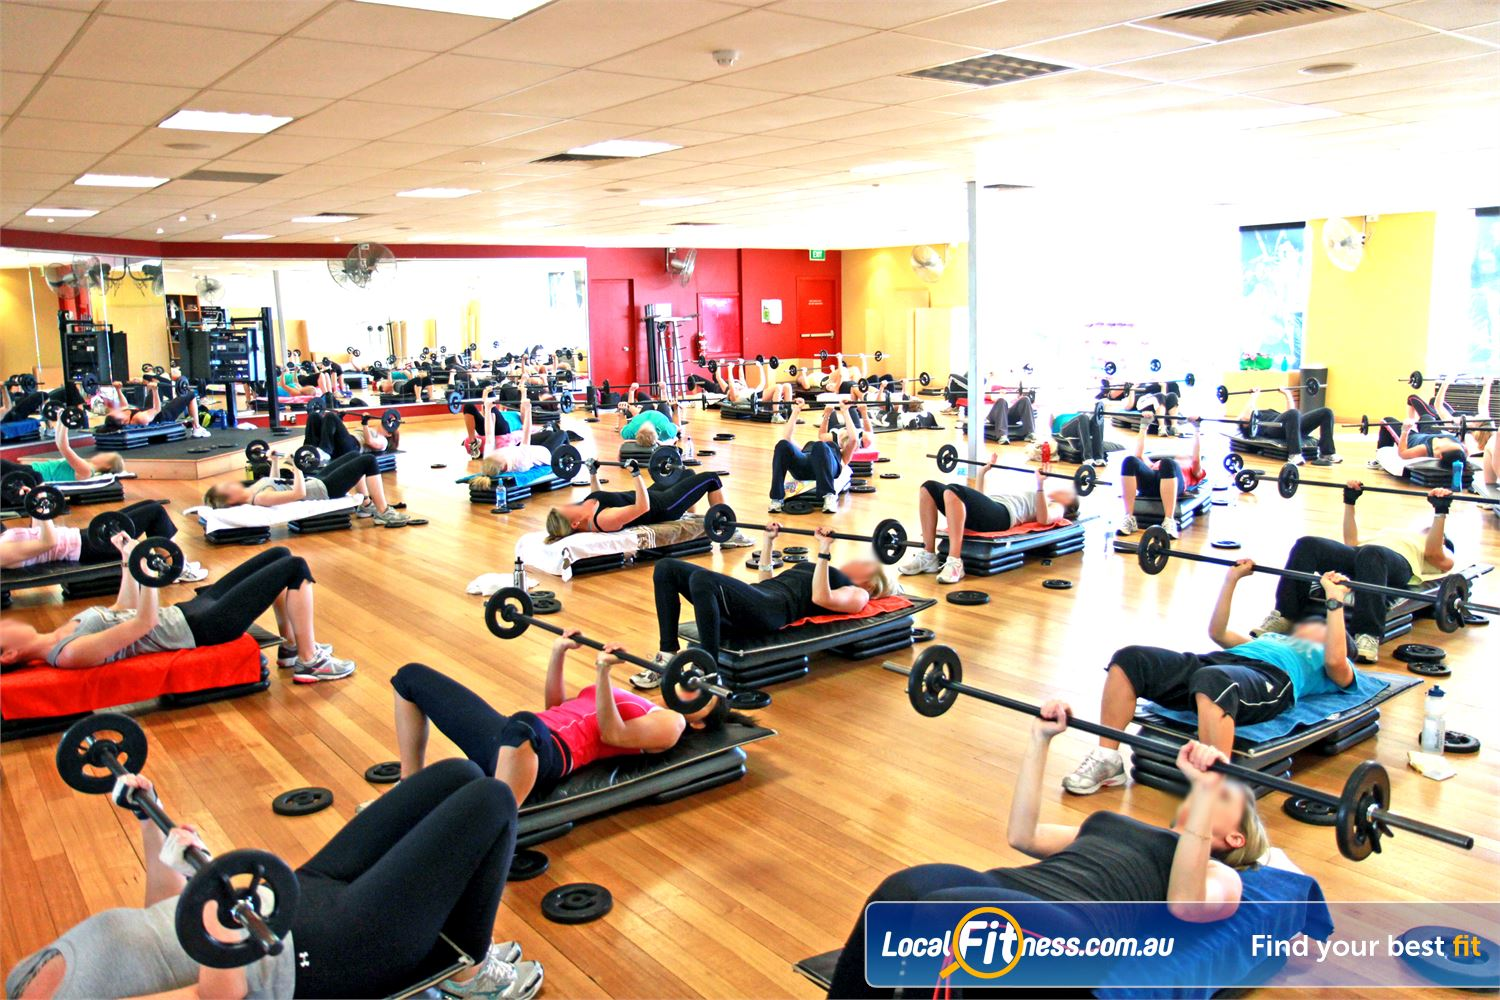 Goodlife Health Clubs Near Osborne Park The exclusive aerobics studio houses popular Innaloo group fitness classes.